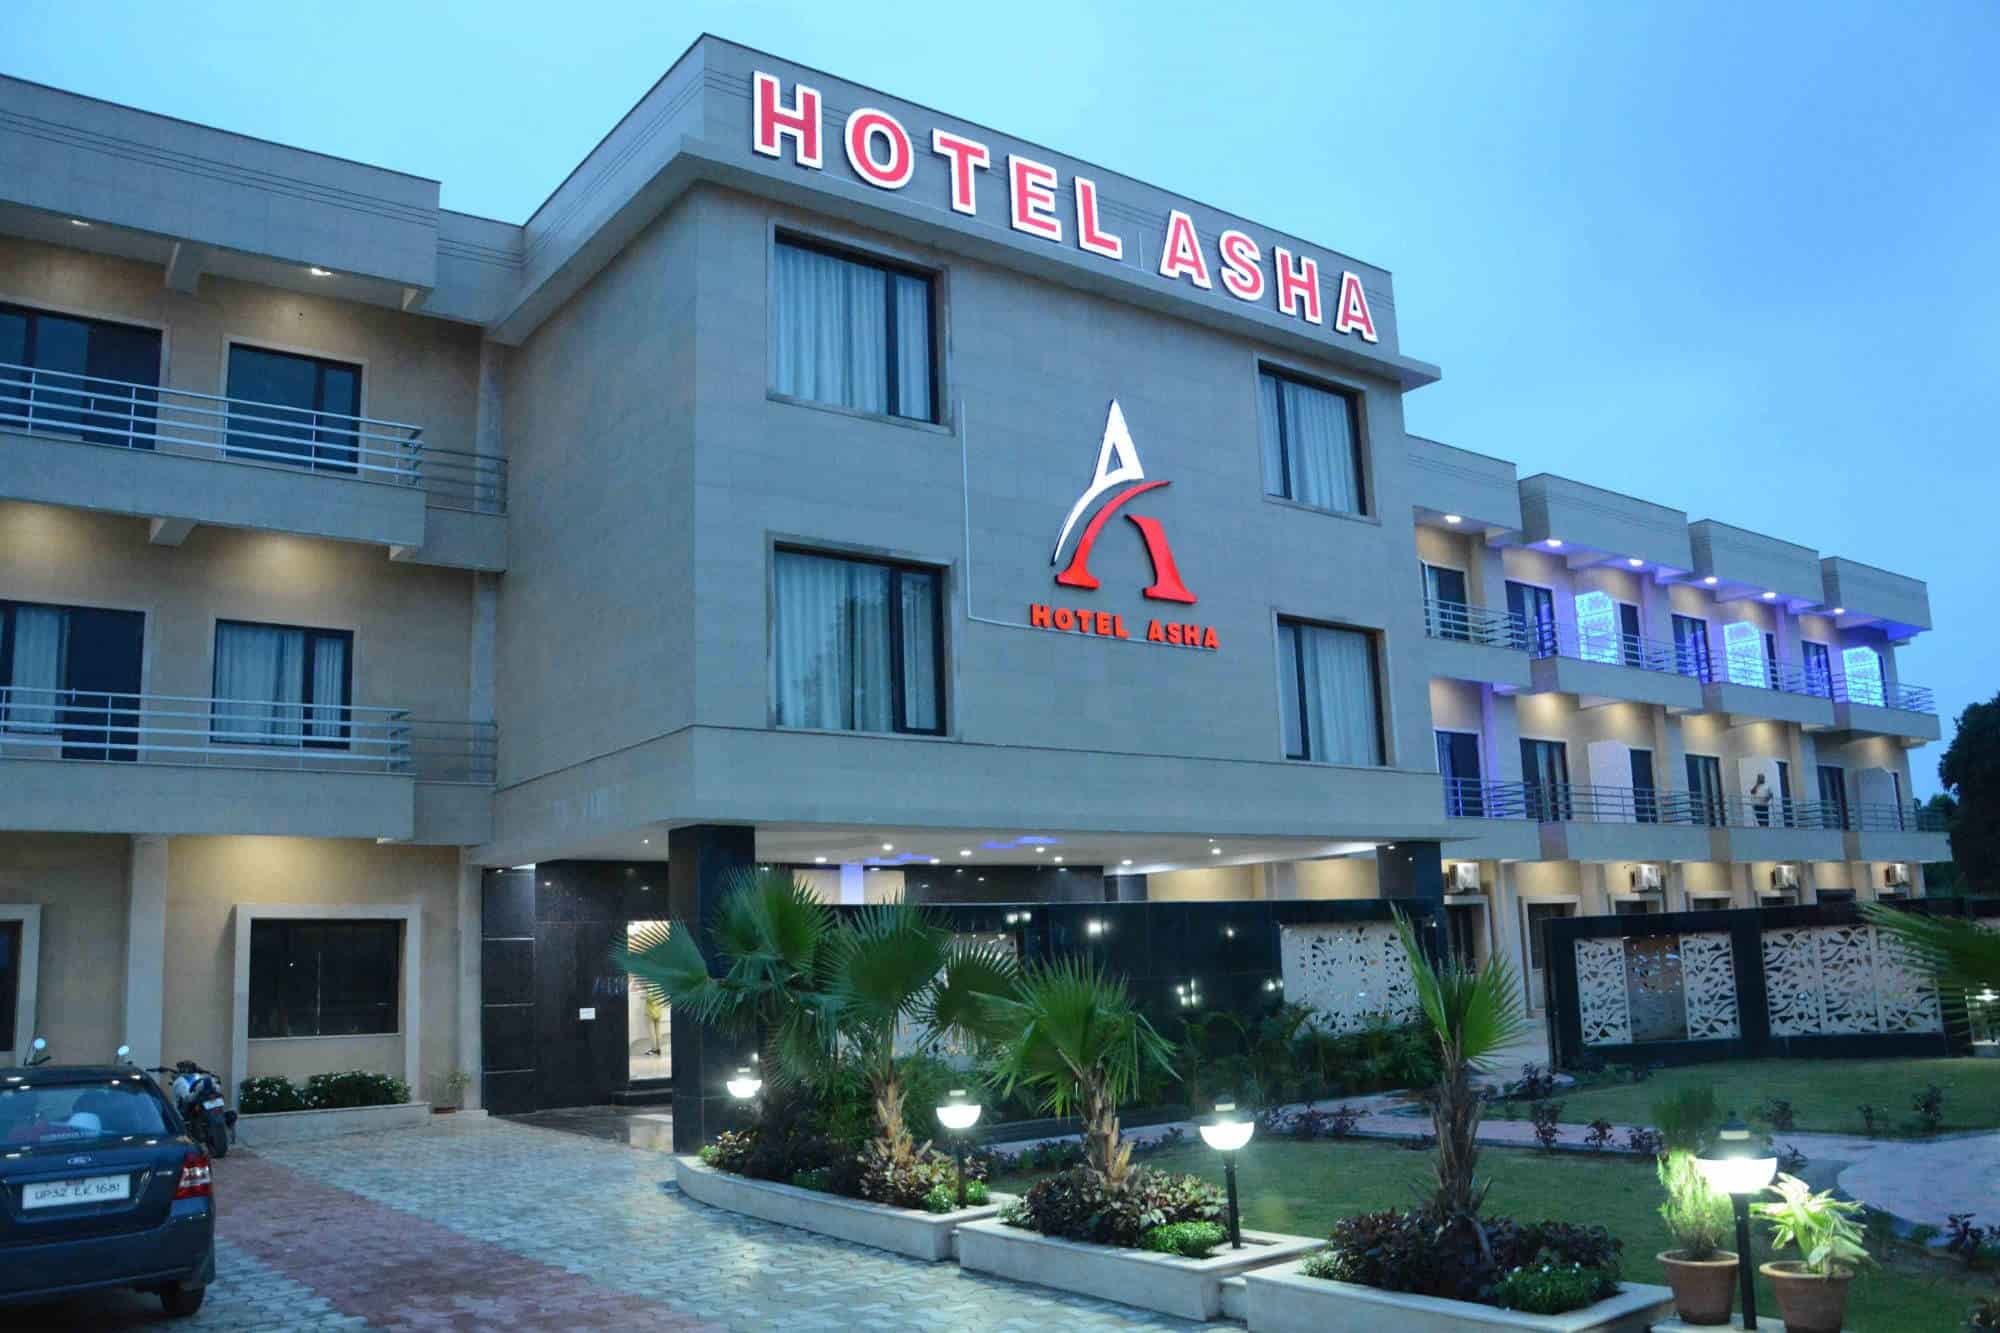 Hotel Asha Photos Saraimira Kannauj Pictures Images Gallery